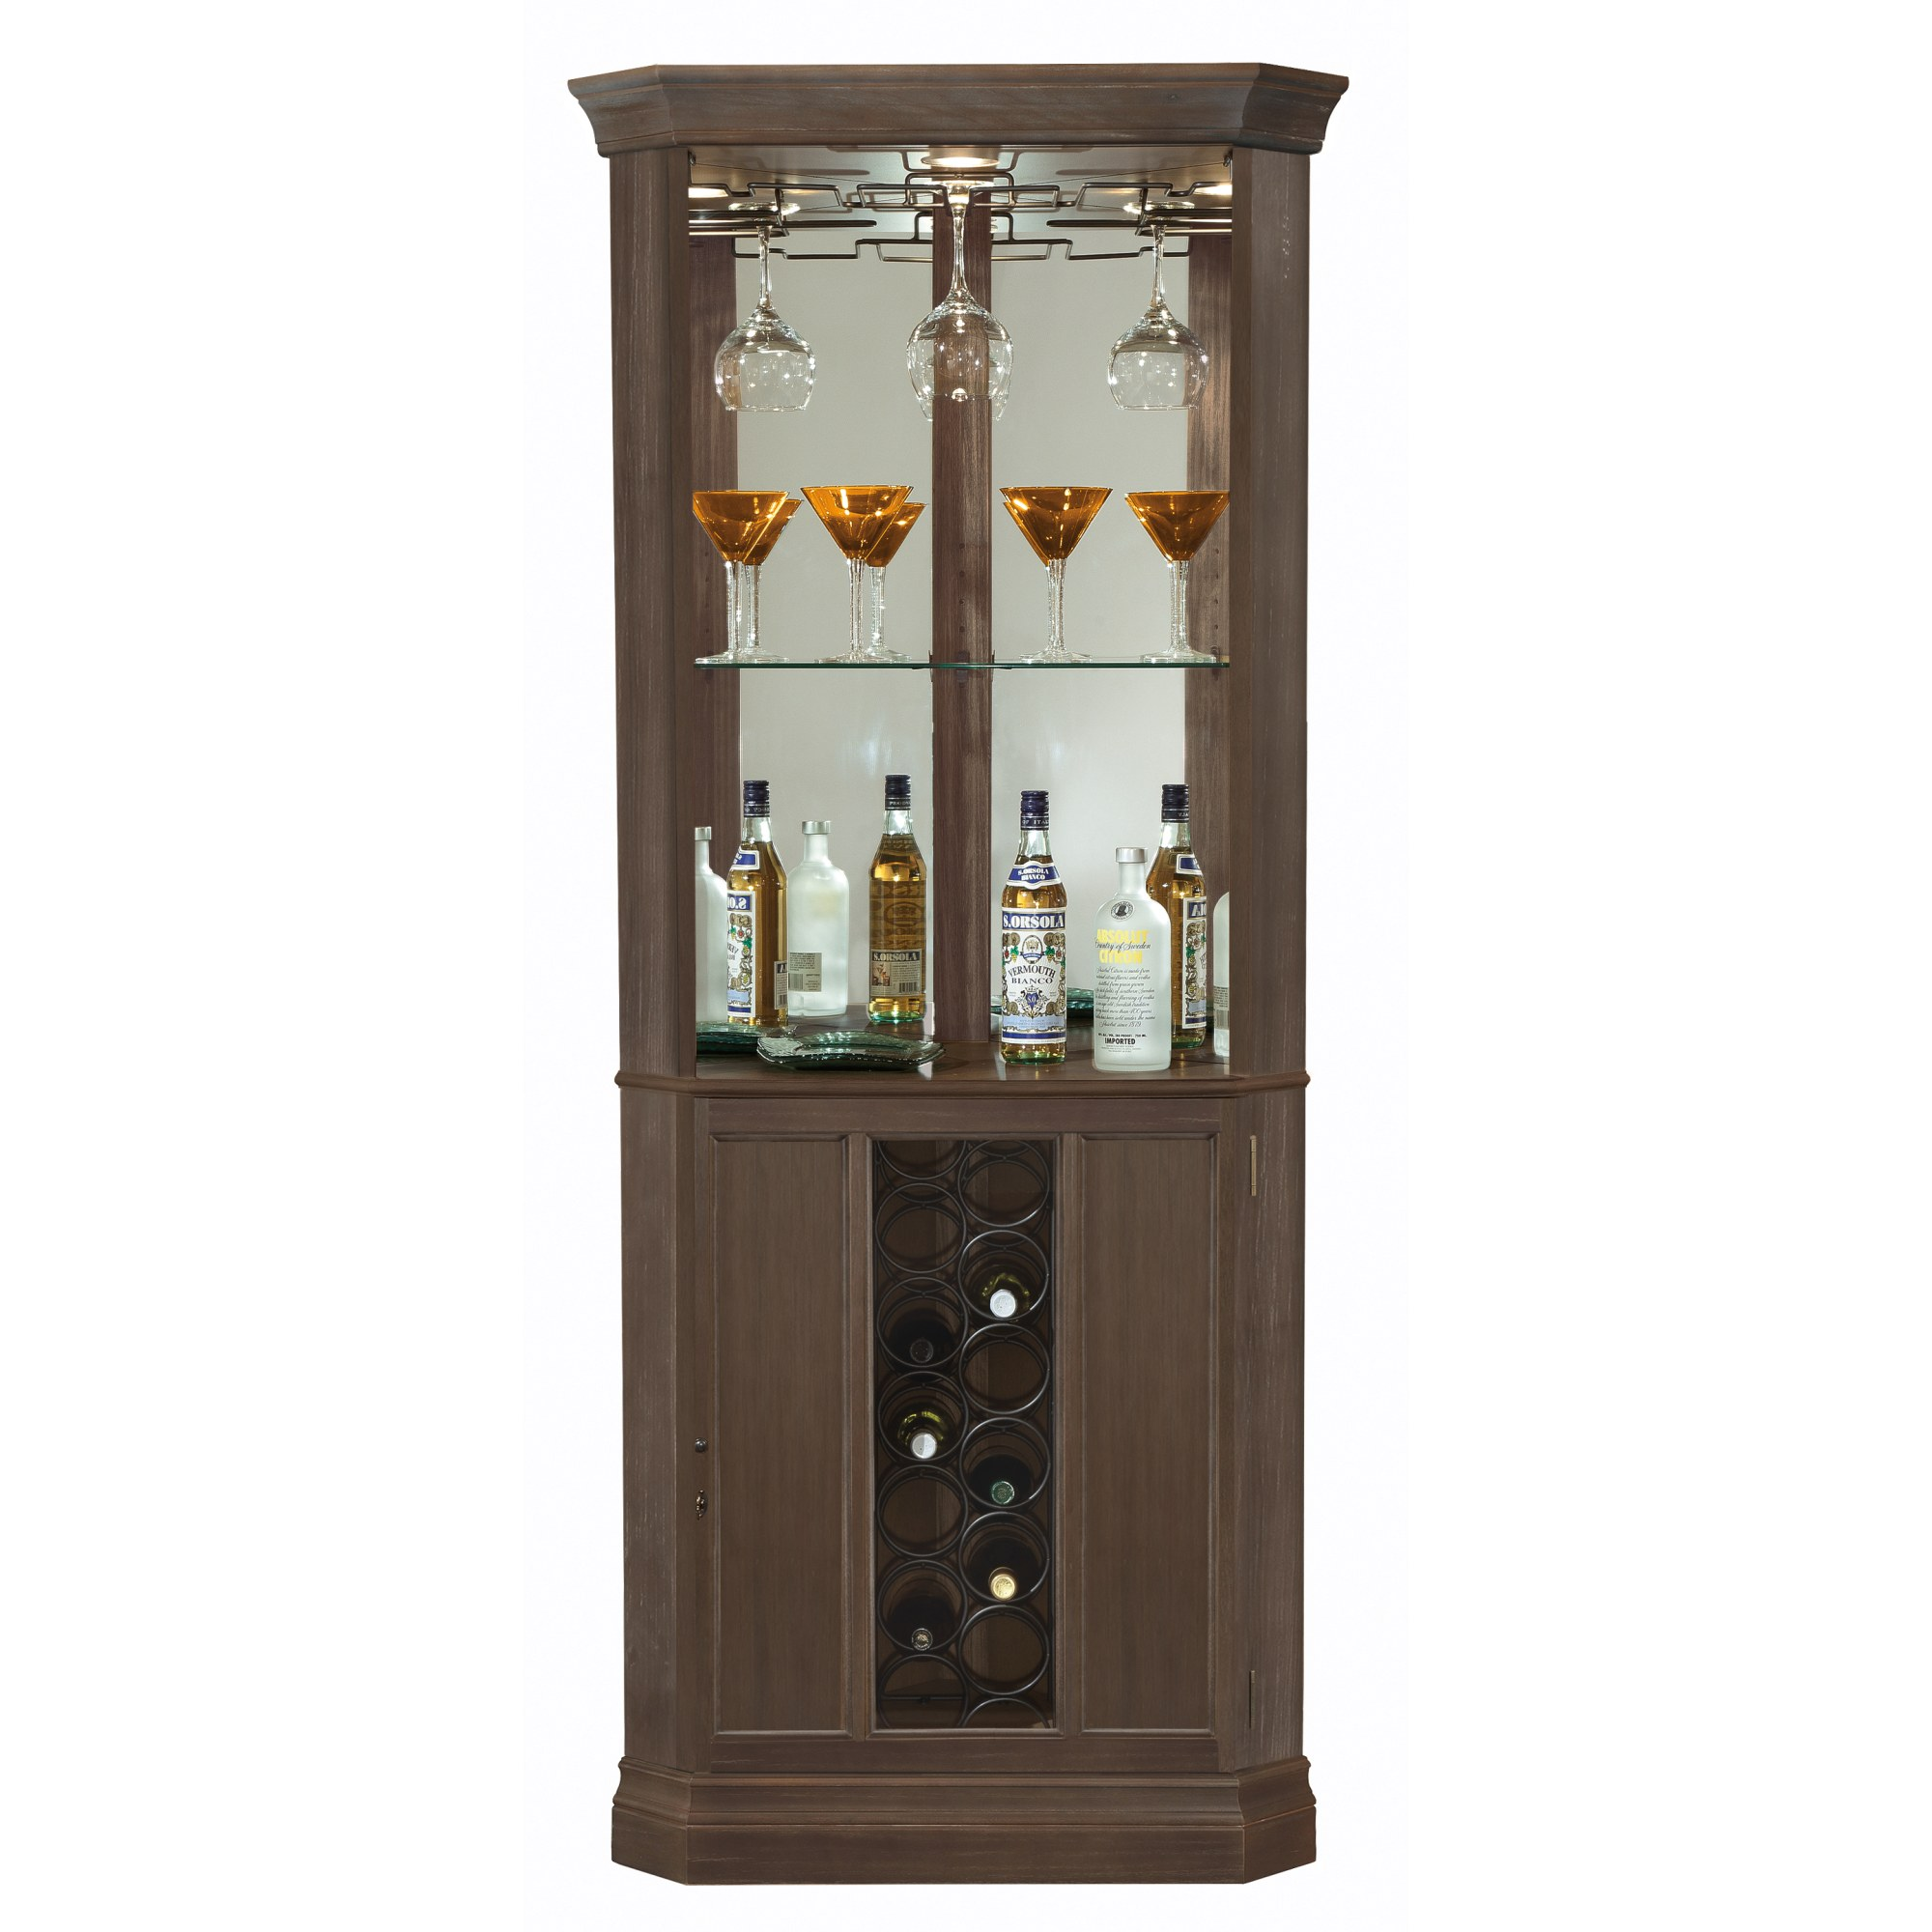 Image for 690-045 Piedmont IV Corner Wine & Bar Cabinet from Howard Miller Official Website